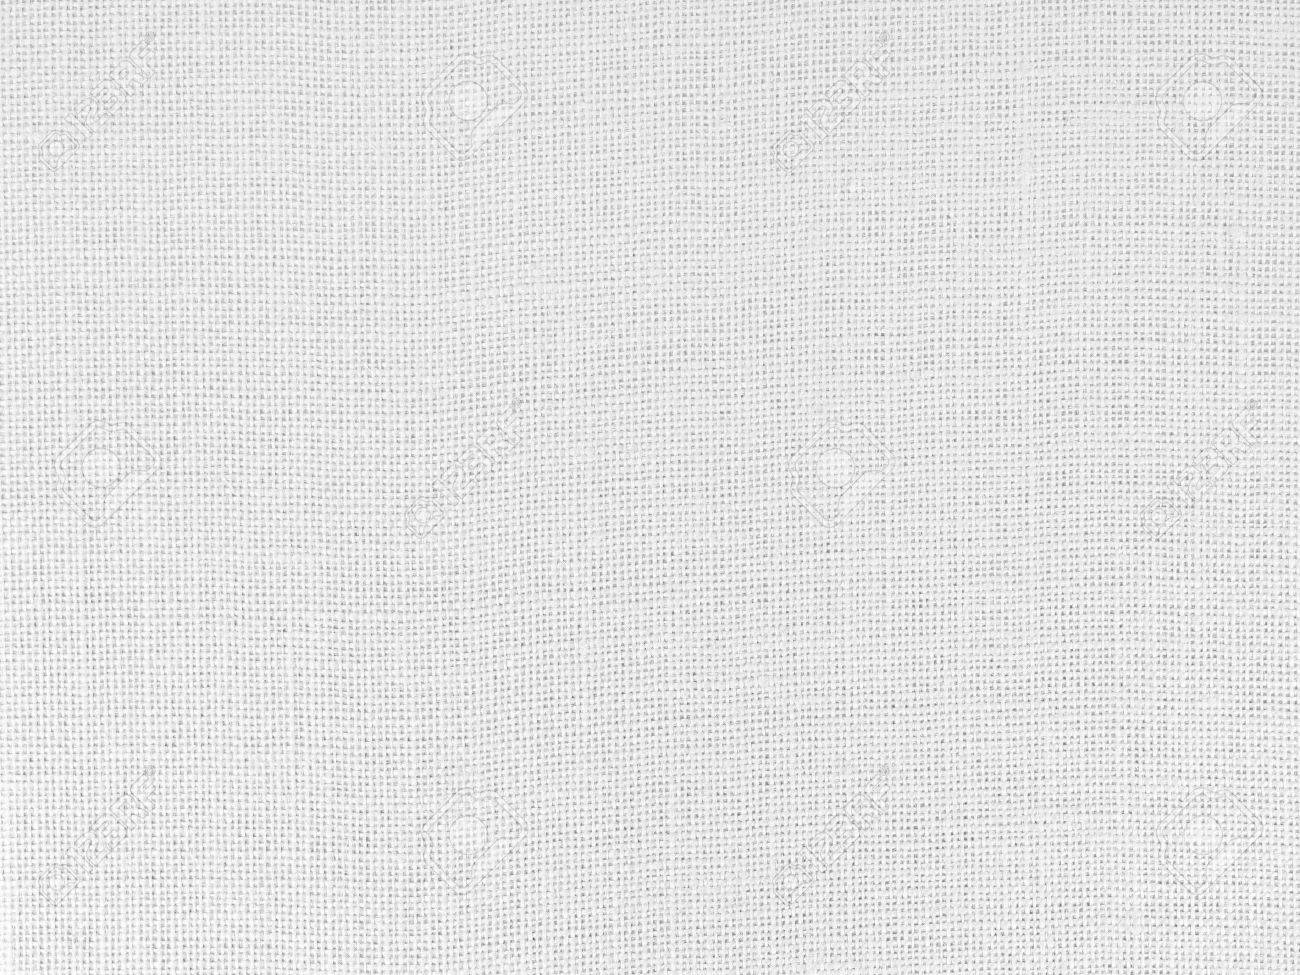 Close up of white woven fabric structure Standard-Bild - 15361026